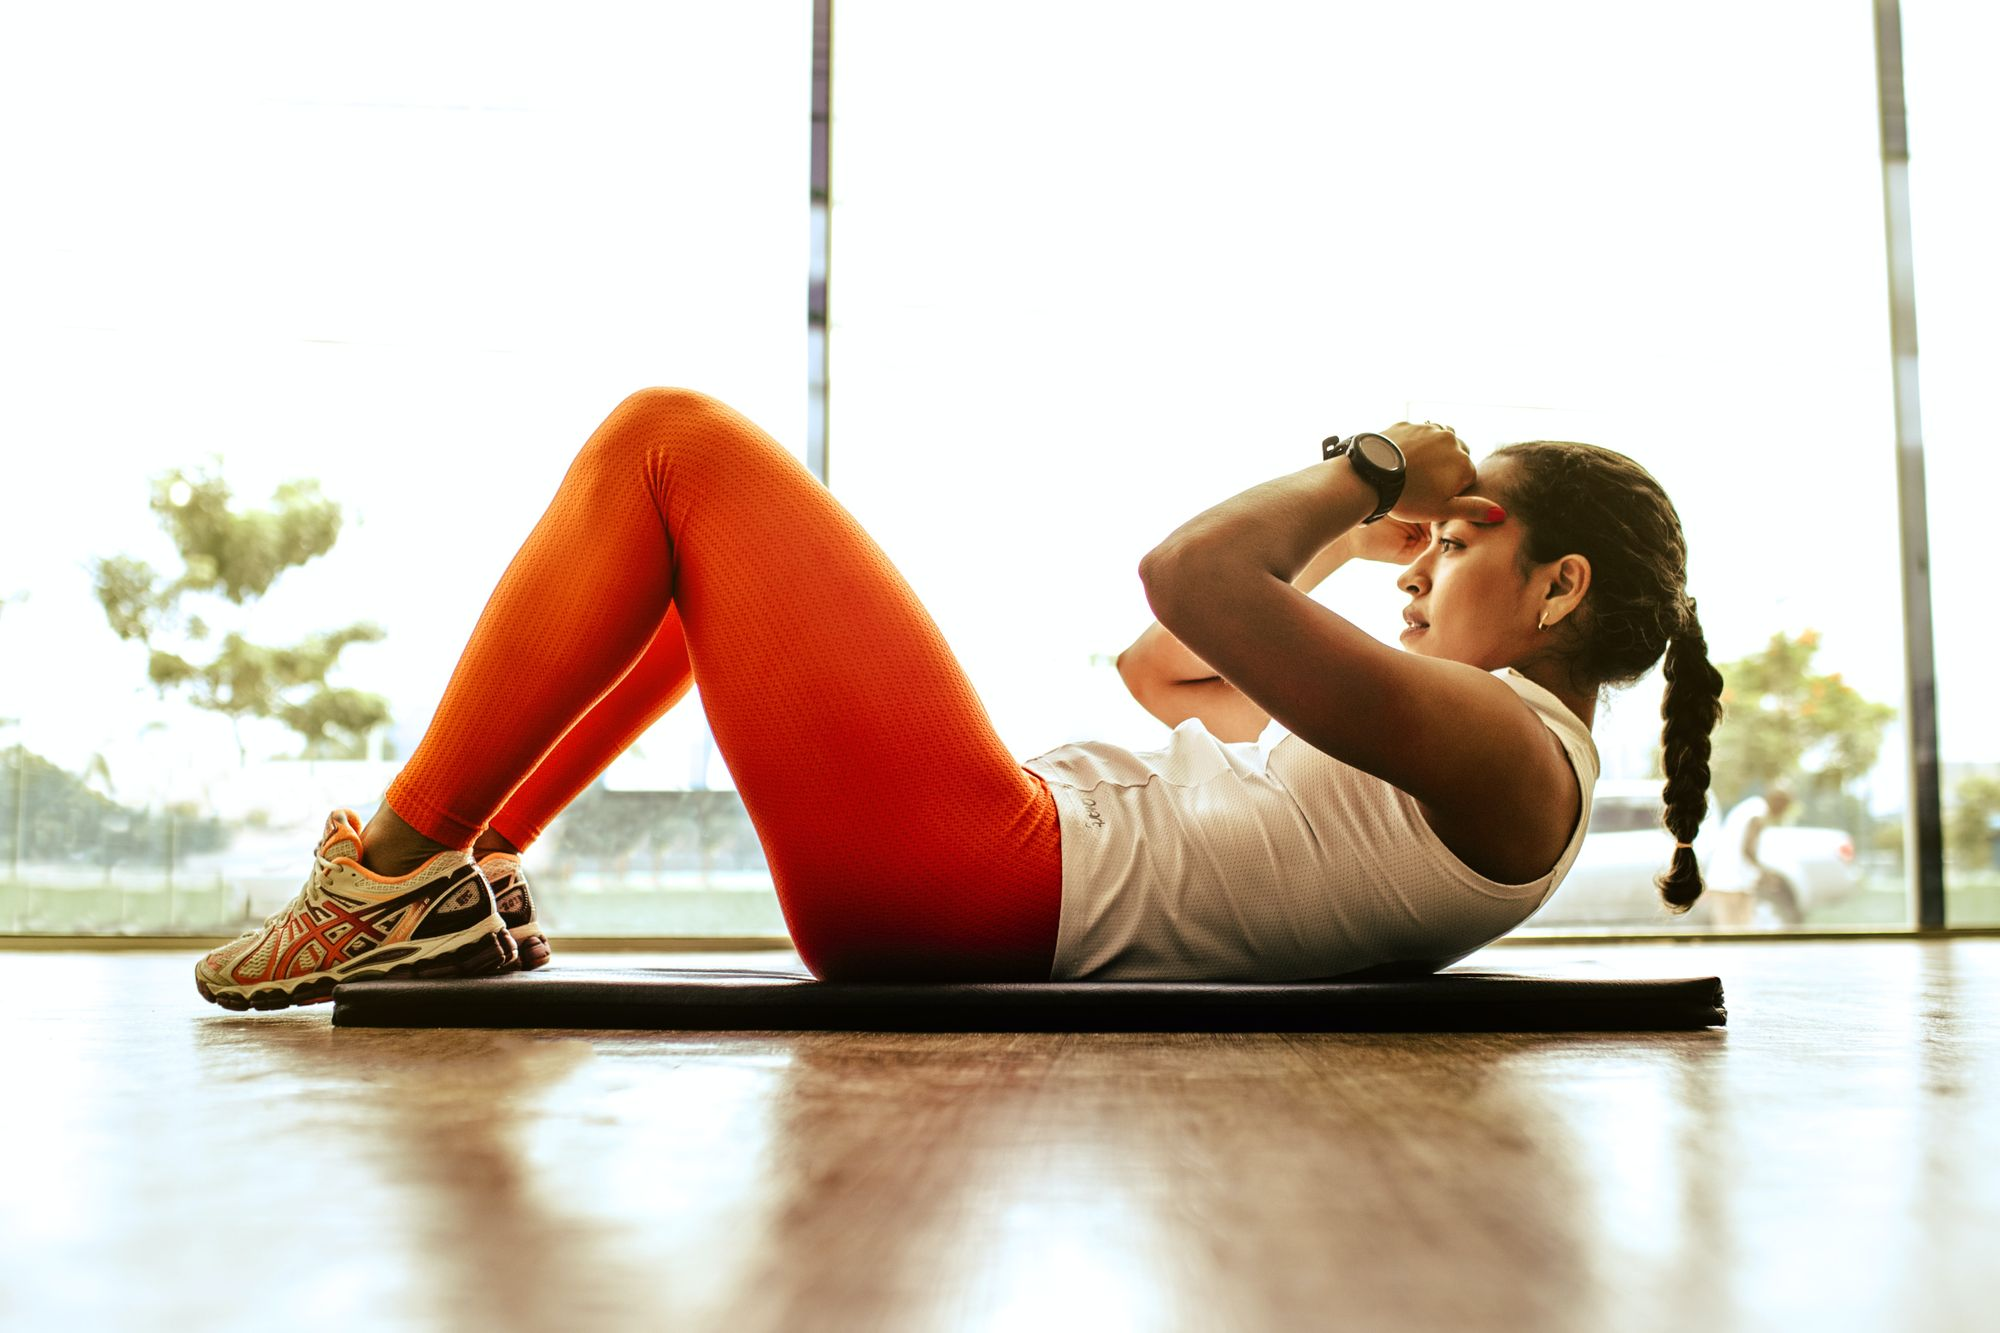 Best bodyweight exercises you can do anywhere